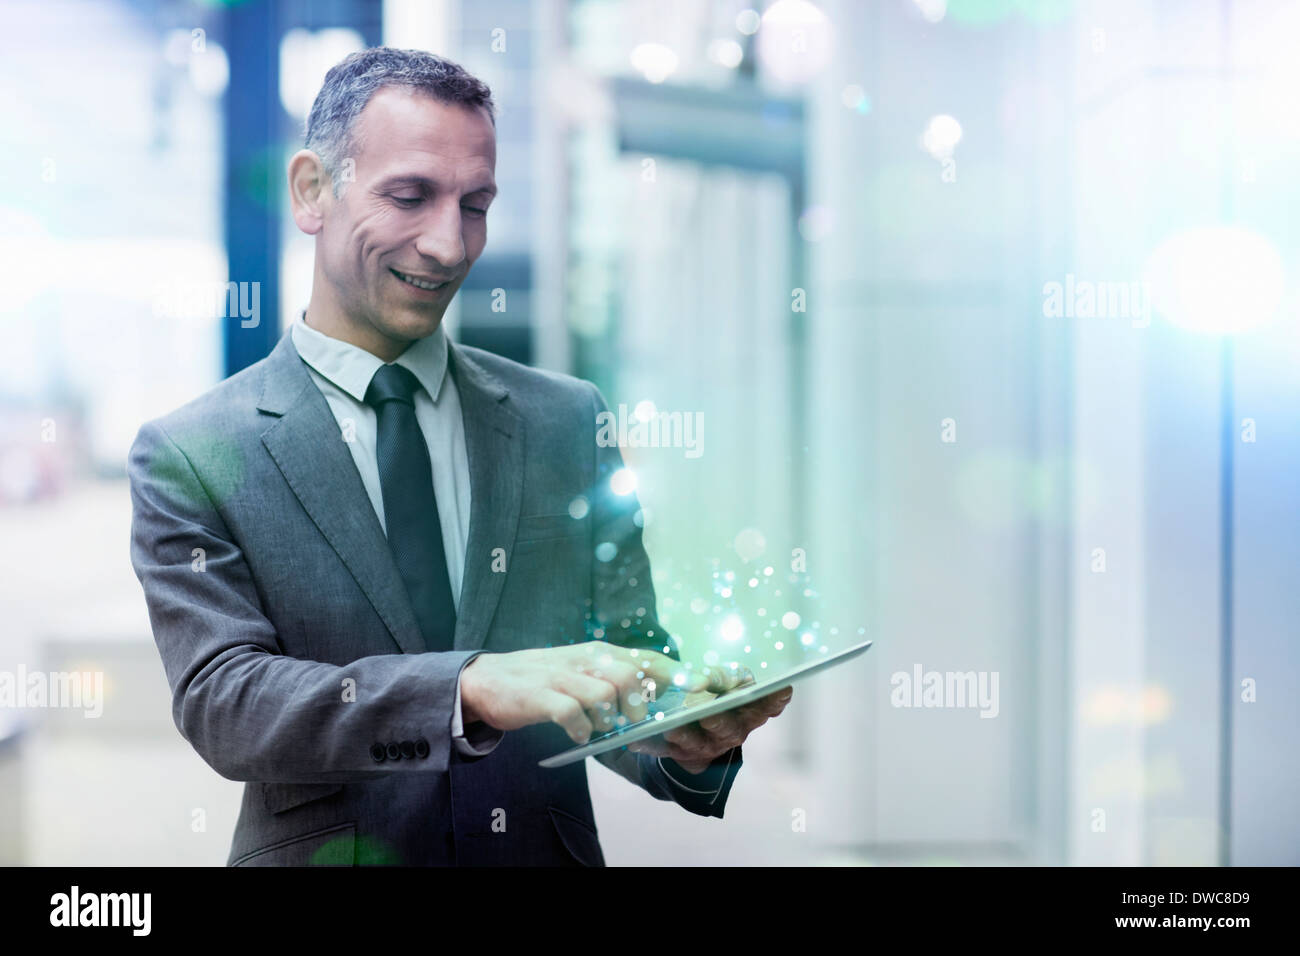 Businessman using digital tablet avec feux lumineux qui s'en Photo Stock